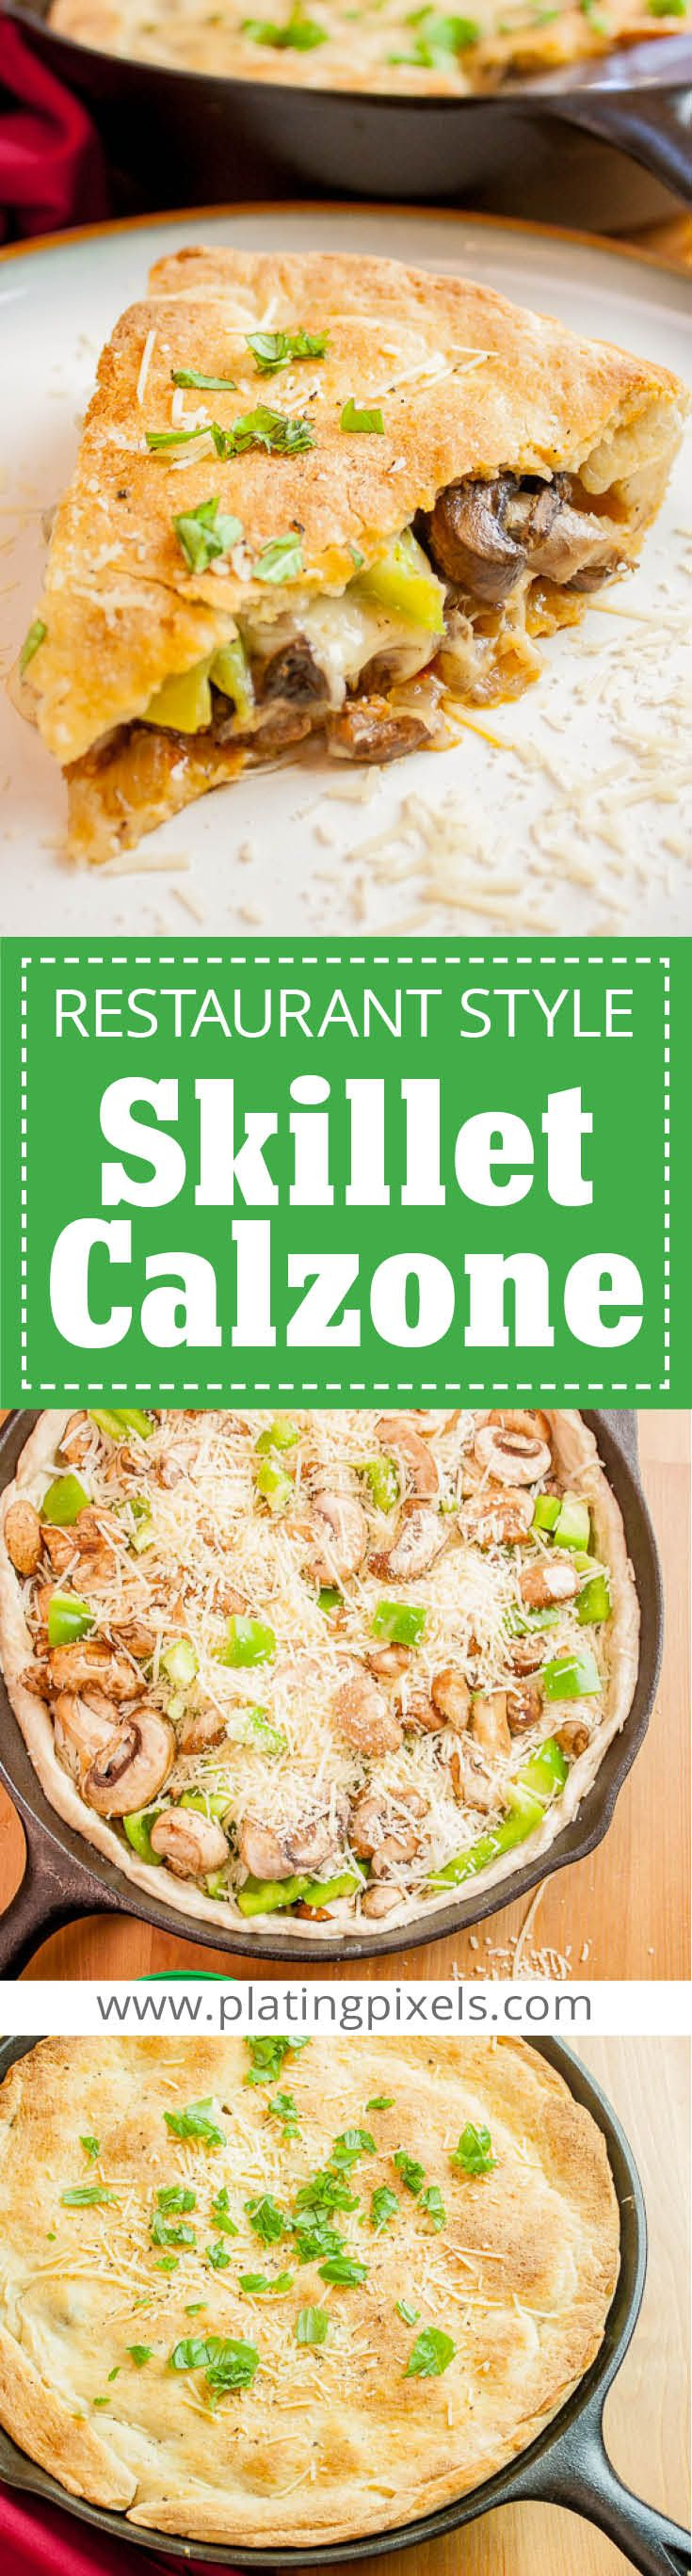 Easy Restaurant Style Skillet Calzone recipe, made at home. By Plating Pixels. Meaty and gooey cheese center with crisp veggies in chewy, flaky and buttery pizza dough shell. Homemade calzone with beef, onion, green bell peppers, mozzarella and parmesean cheese. - www.platingpixels.com